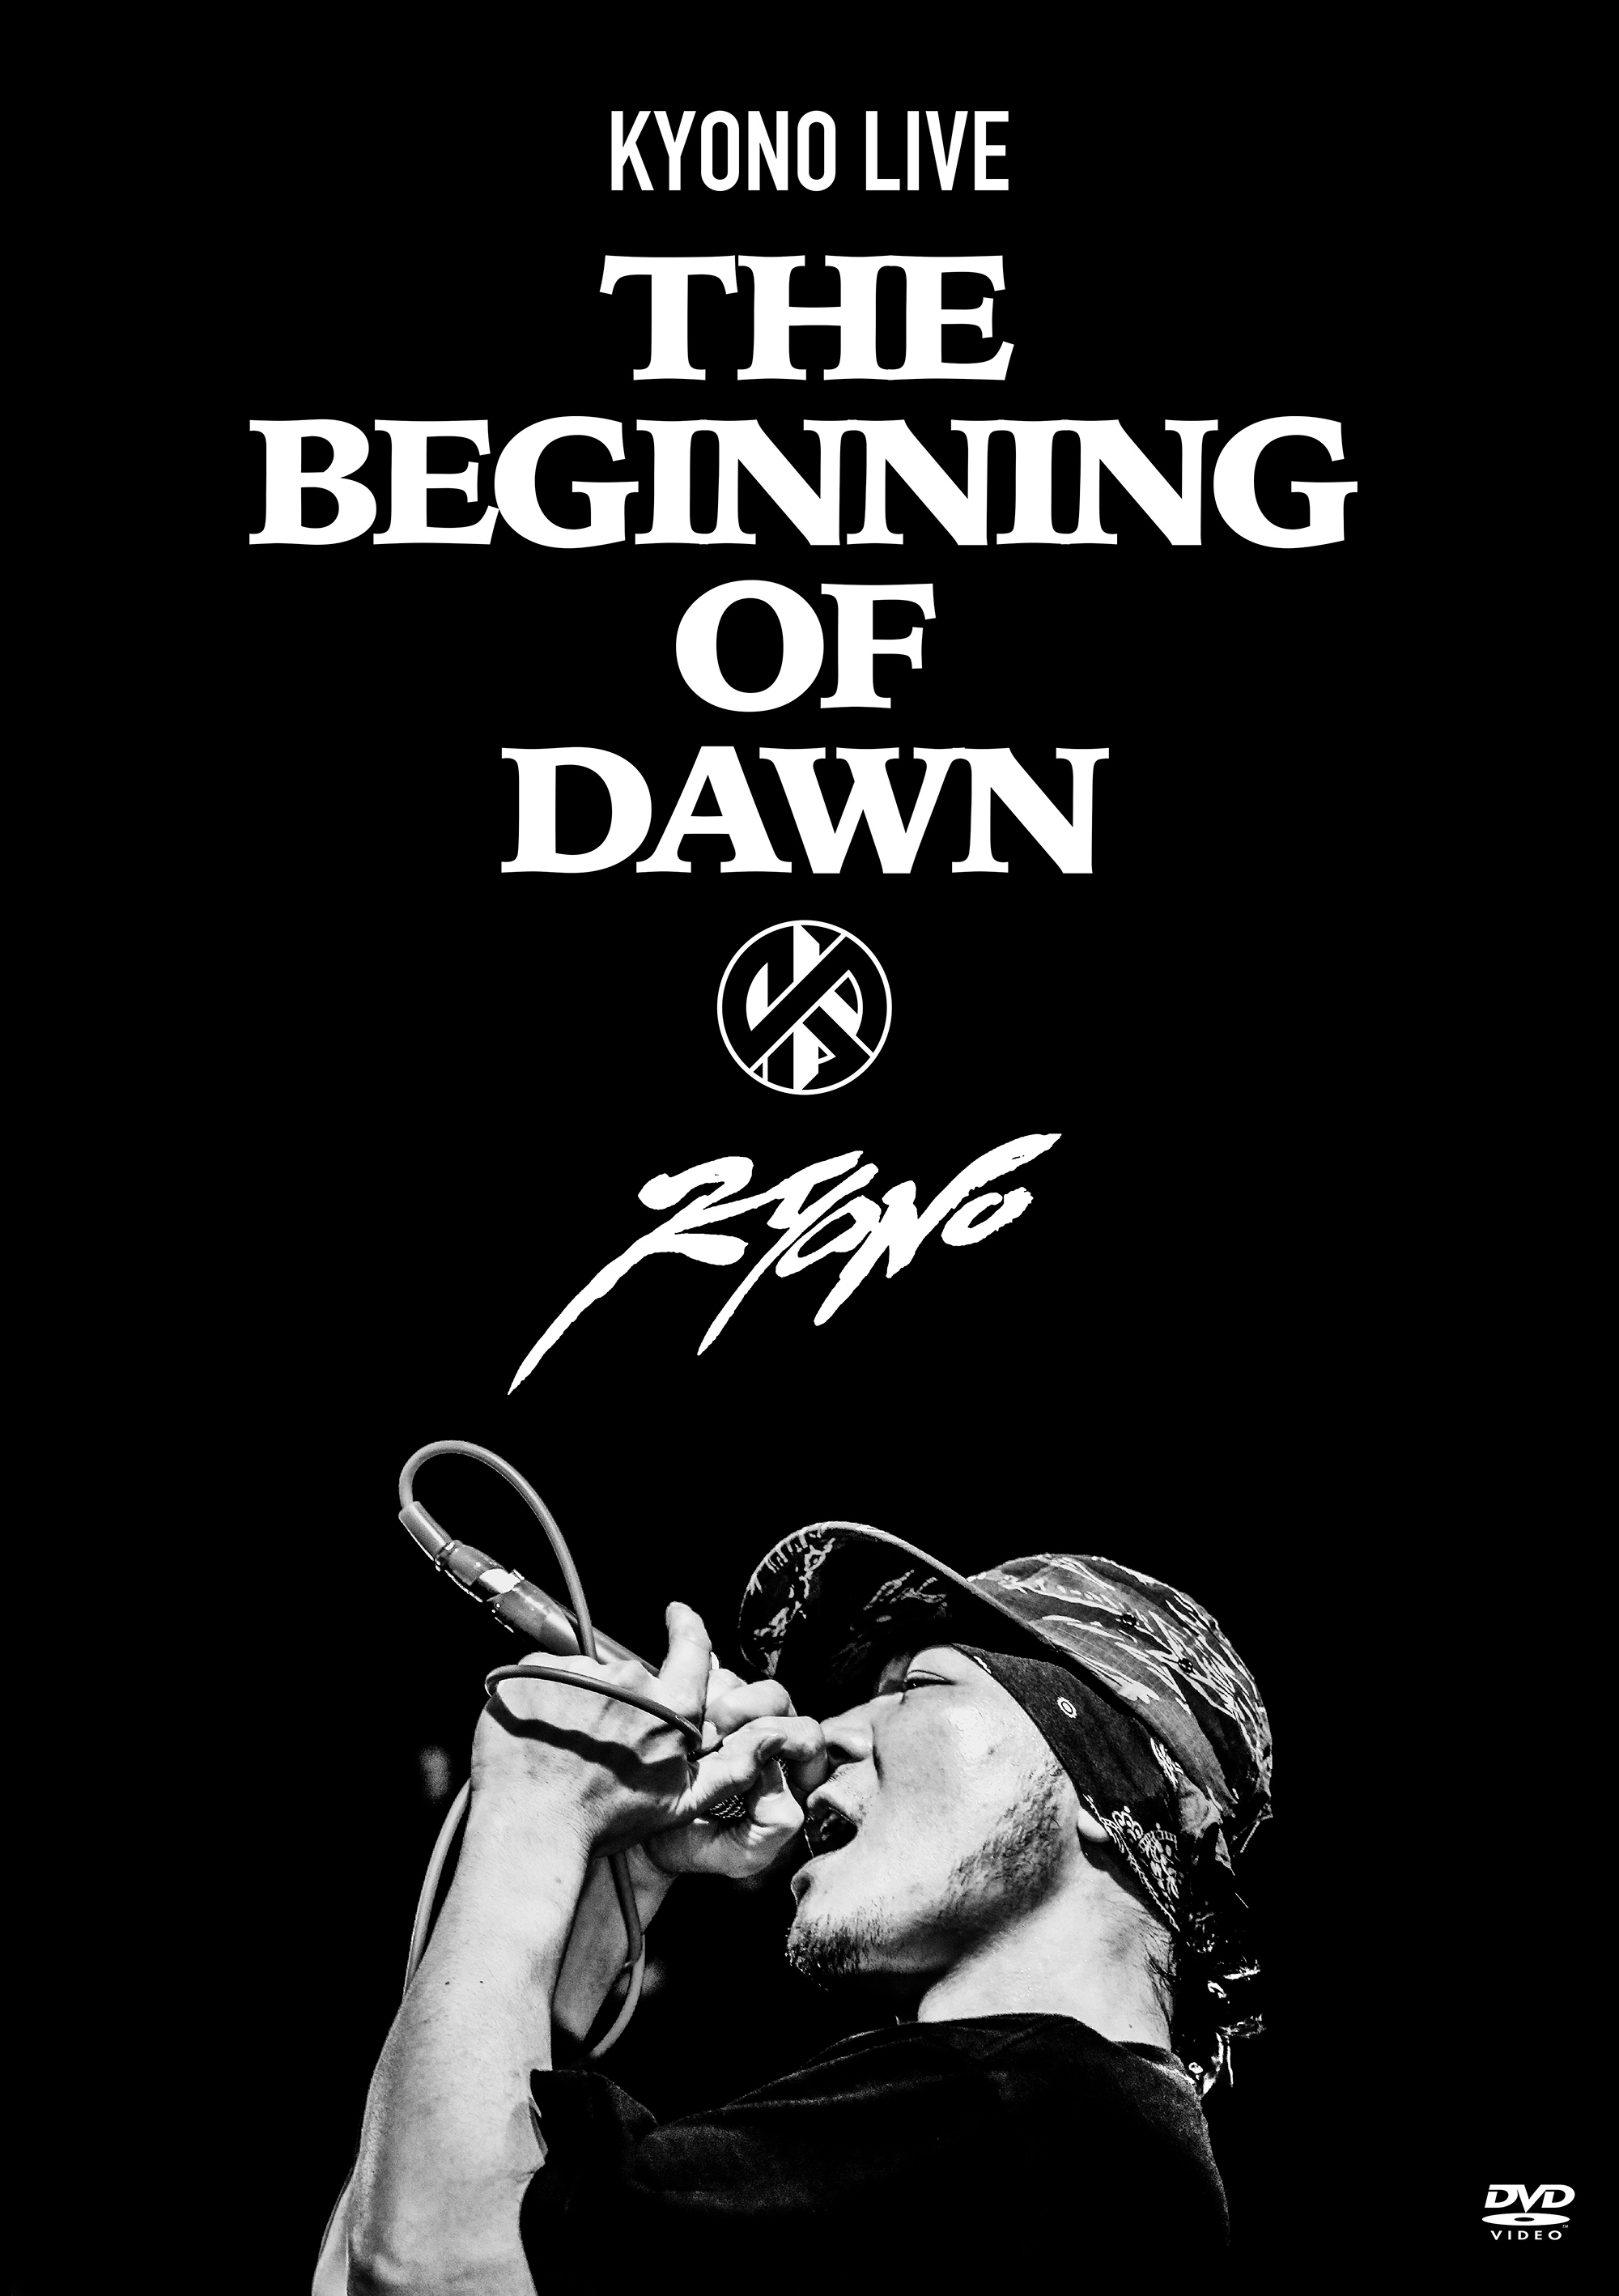 『KYONO LIVE - The Beginning of Dawn-』